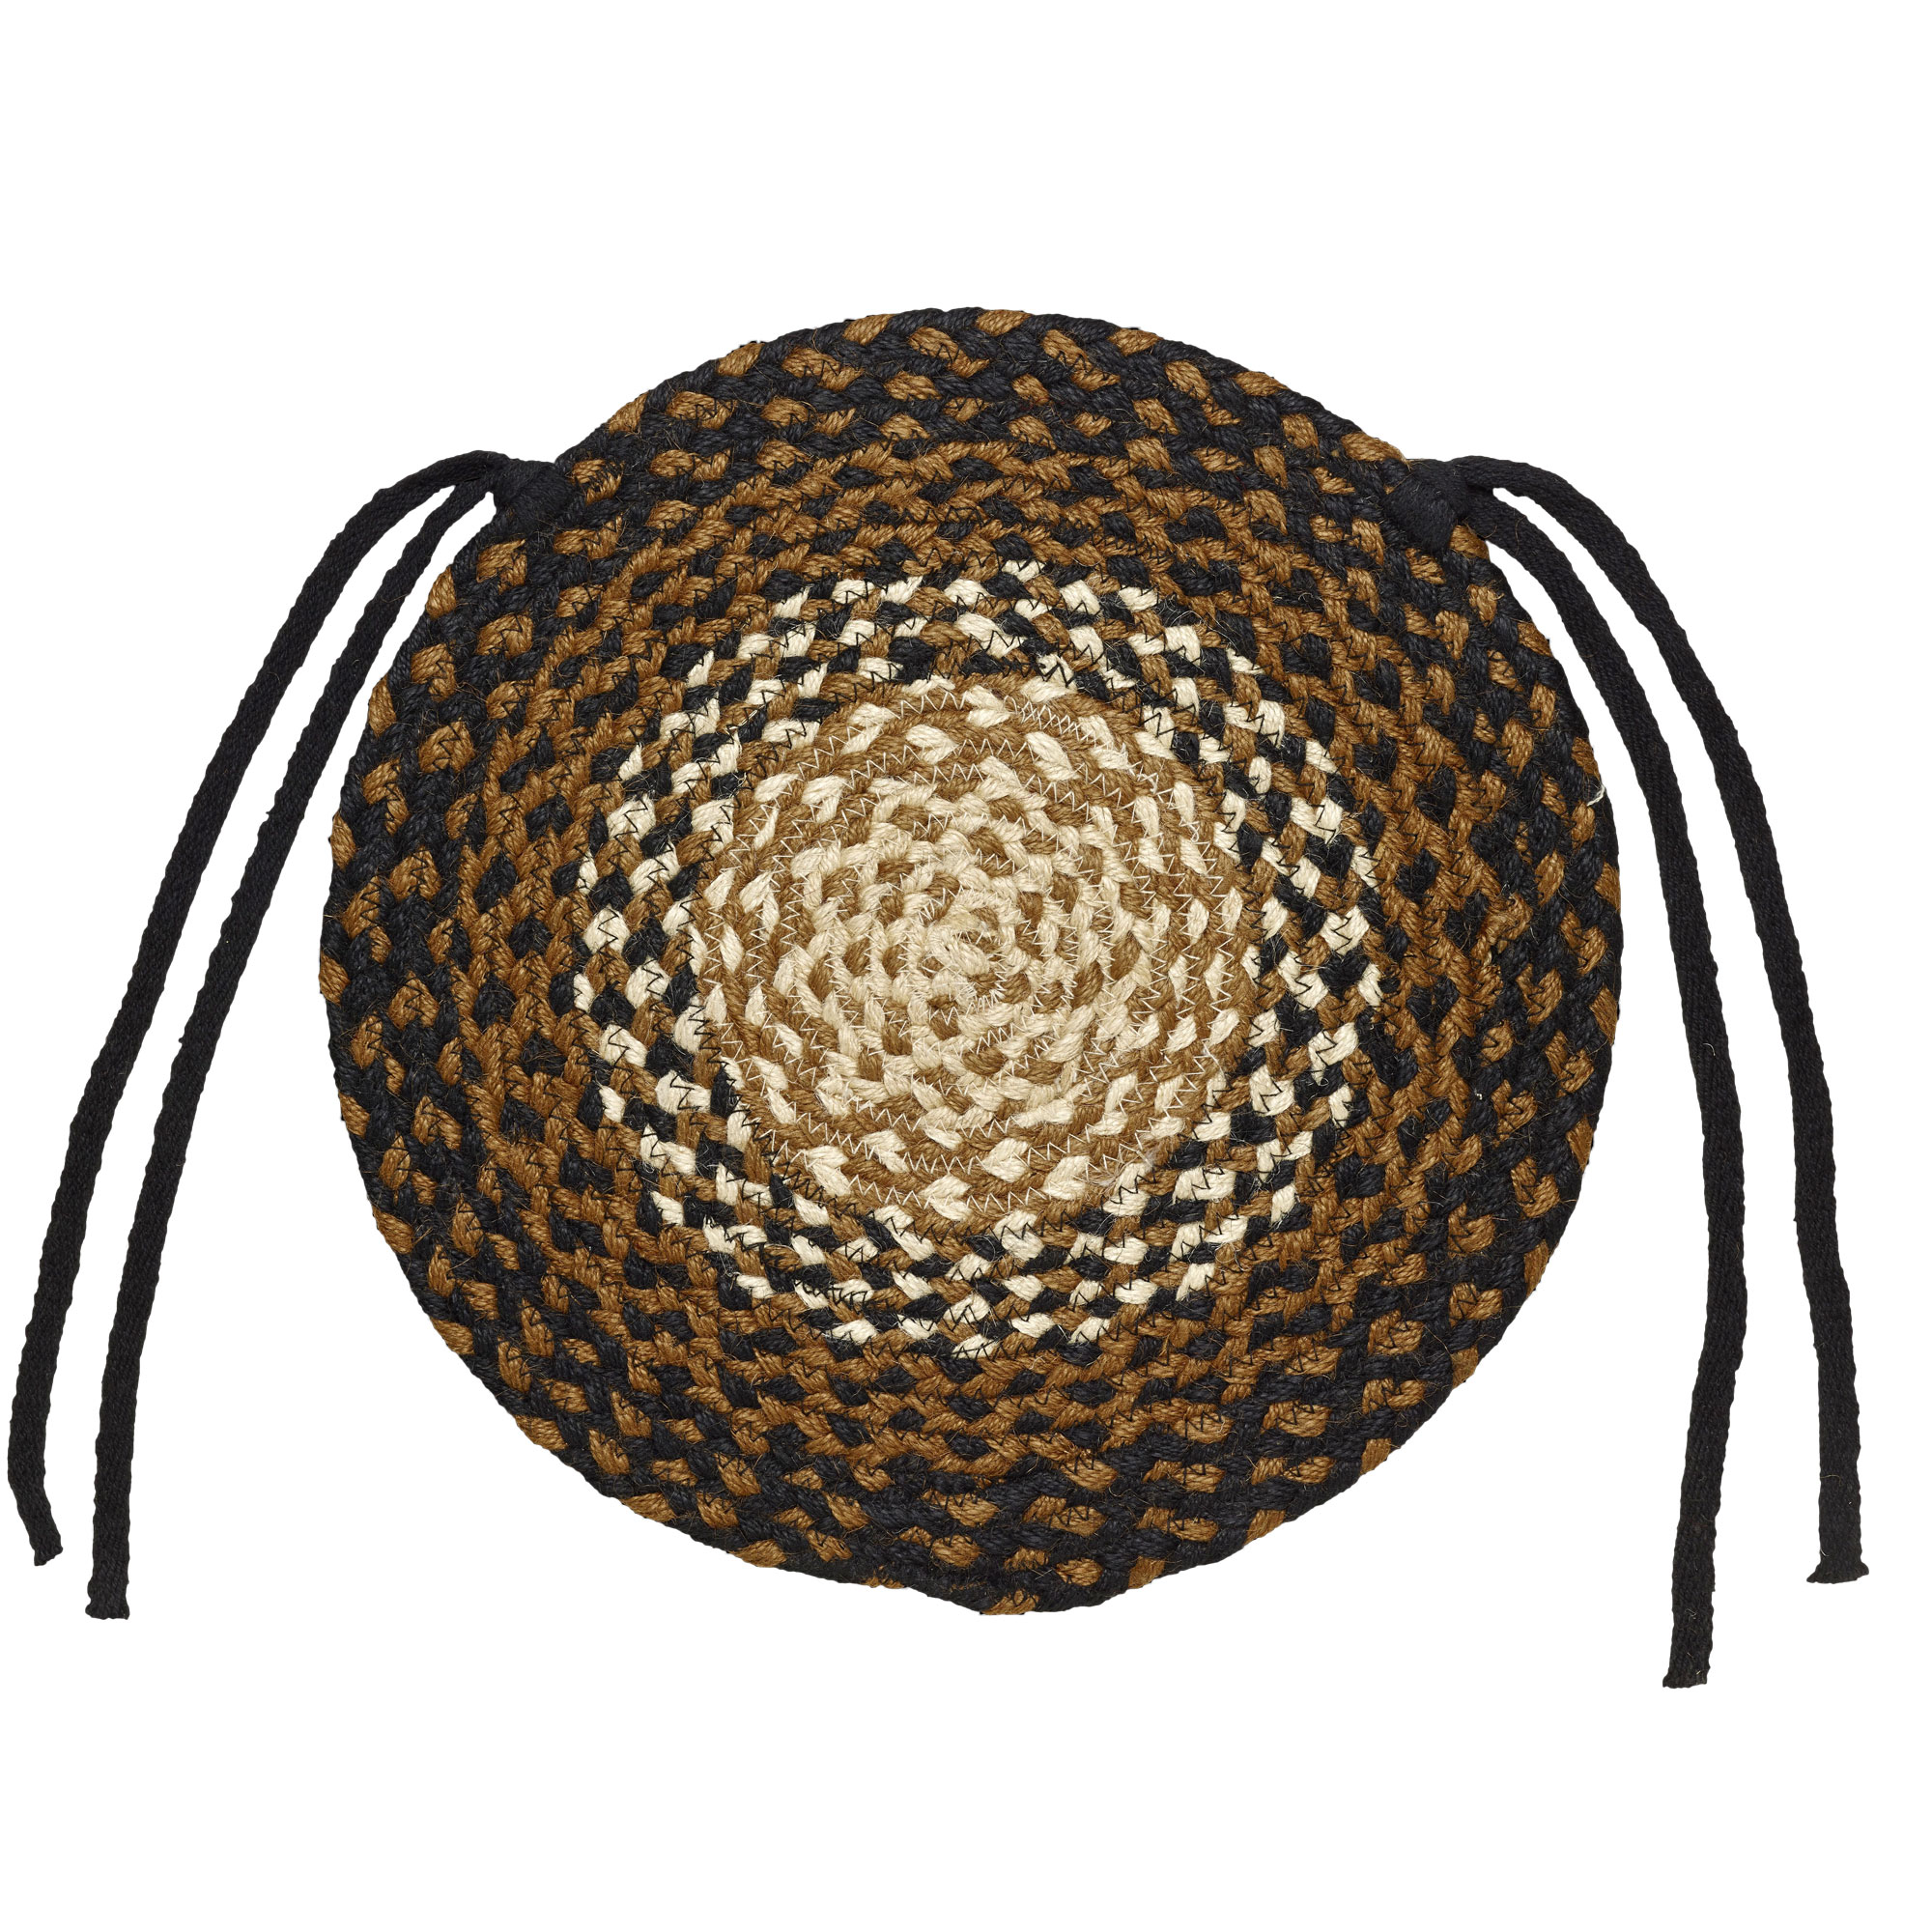 Stallion 15 Inch Braided Chair Pad